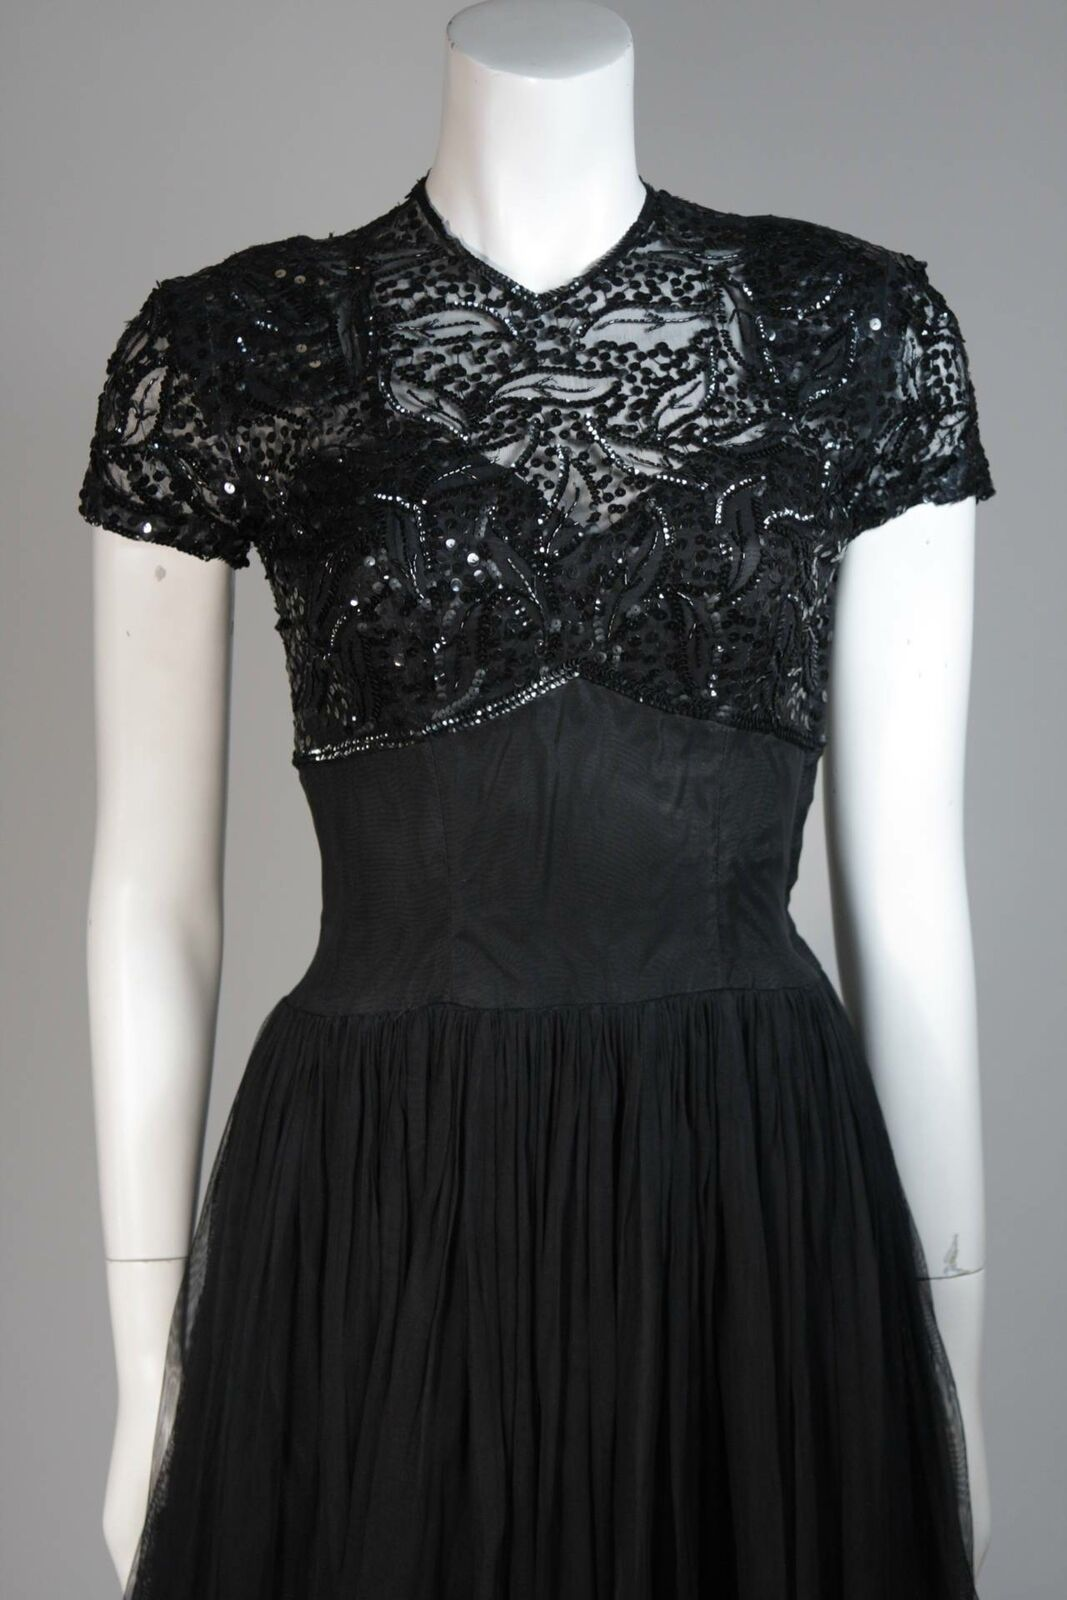 CEIL CHAPMAN Attributed Black Gown Size Small - image 3